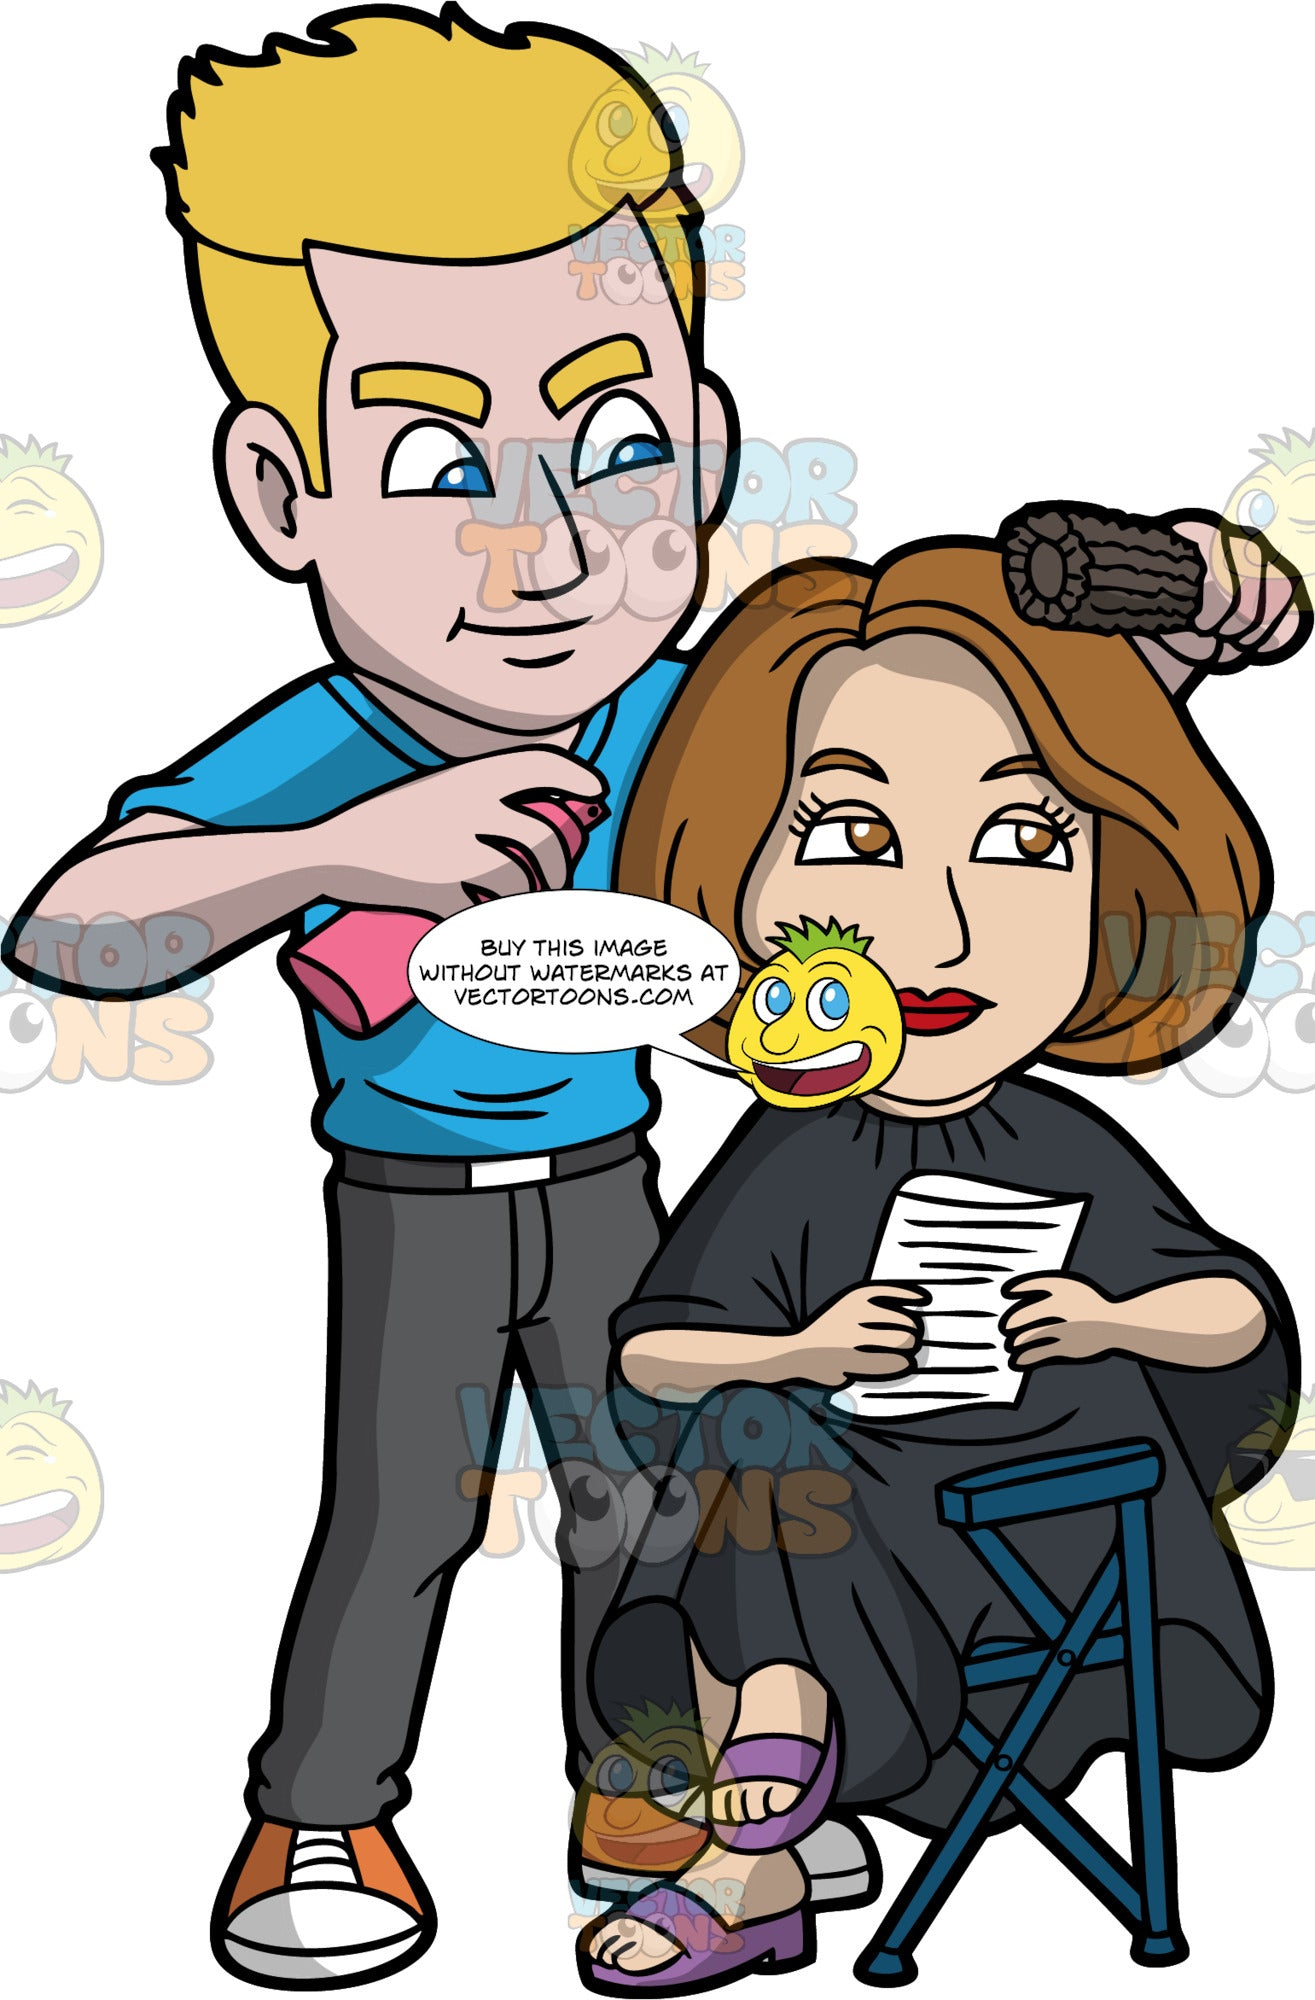 A Male Hairdresser Styling A Clients Hair. A male hairdresser with blonde hair, wearing a blue shirt, gray pants, orange with white sneakers, smirks while styling the brown hair of a female actress sitting on a dark blue folding chair, wearing a black salon gown cape, purple sandals who is smiling while holding a script, using a black round brush and a pink can of hair spray